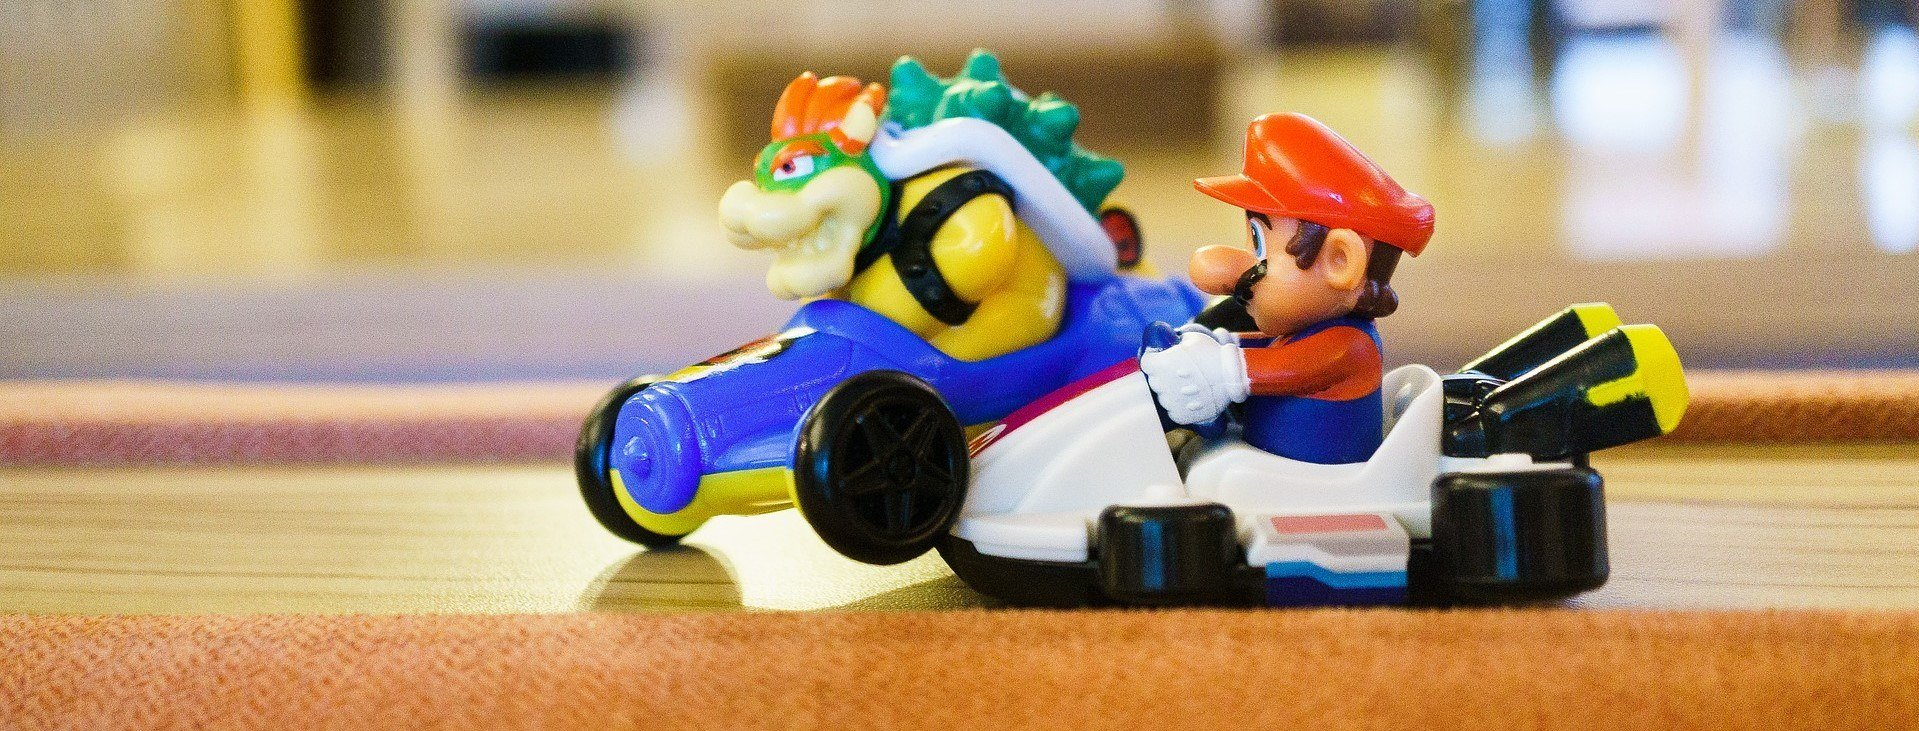 Two characters from Mario Kart